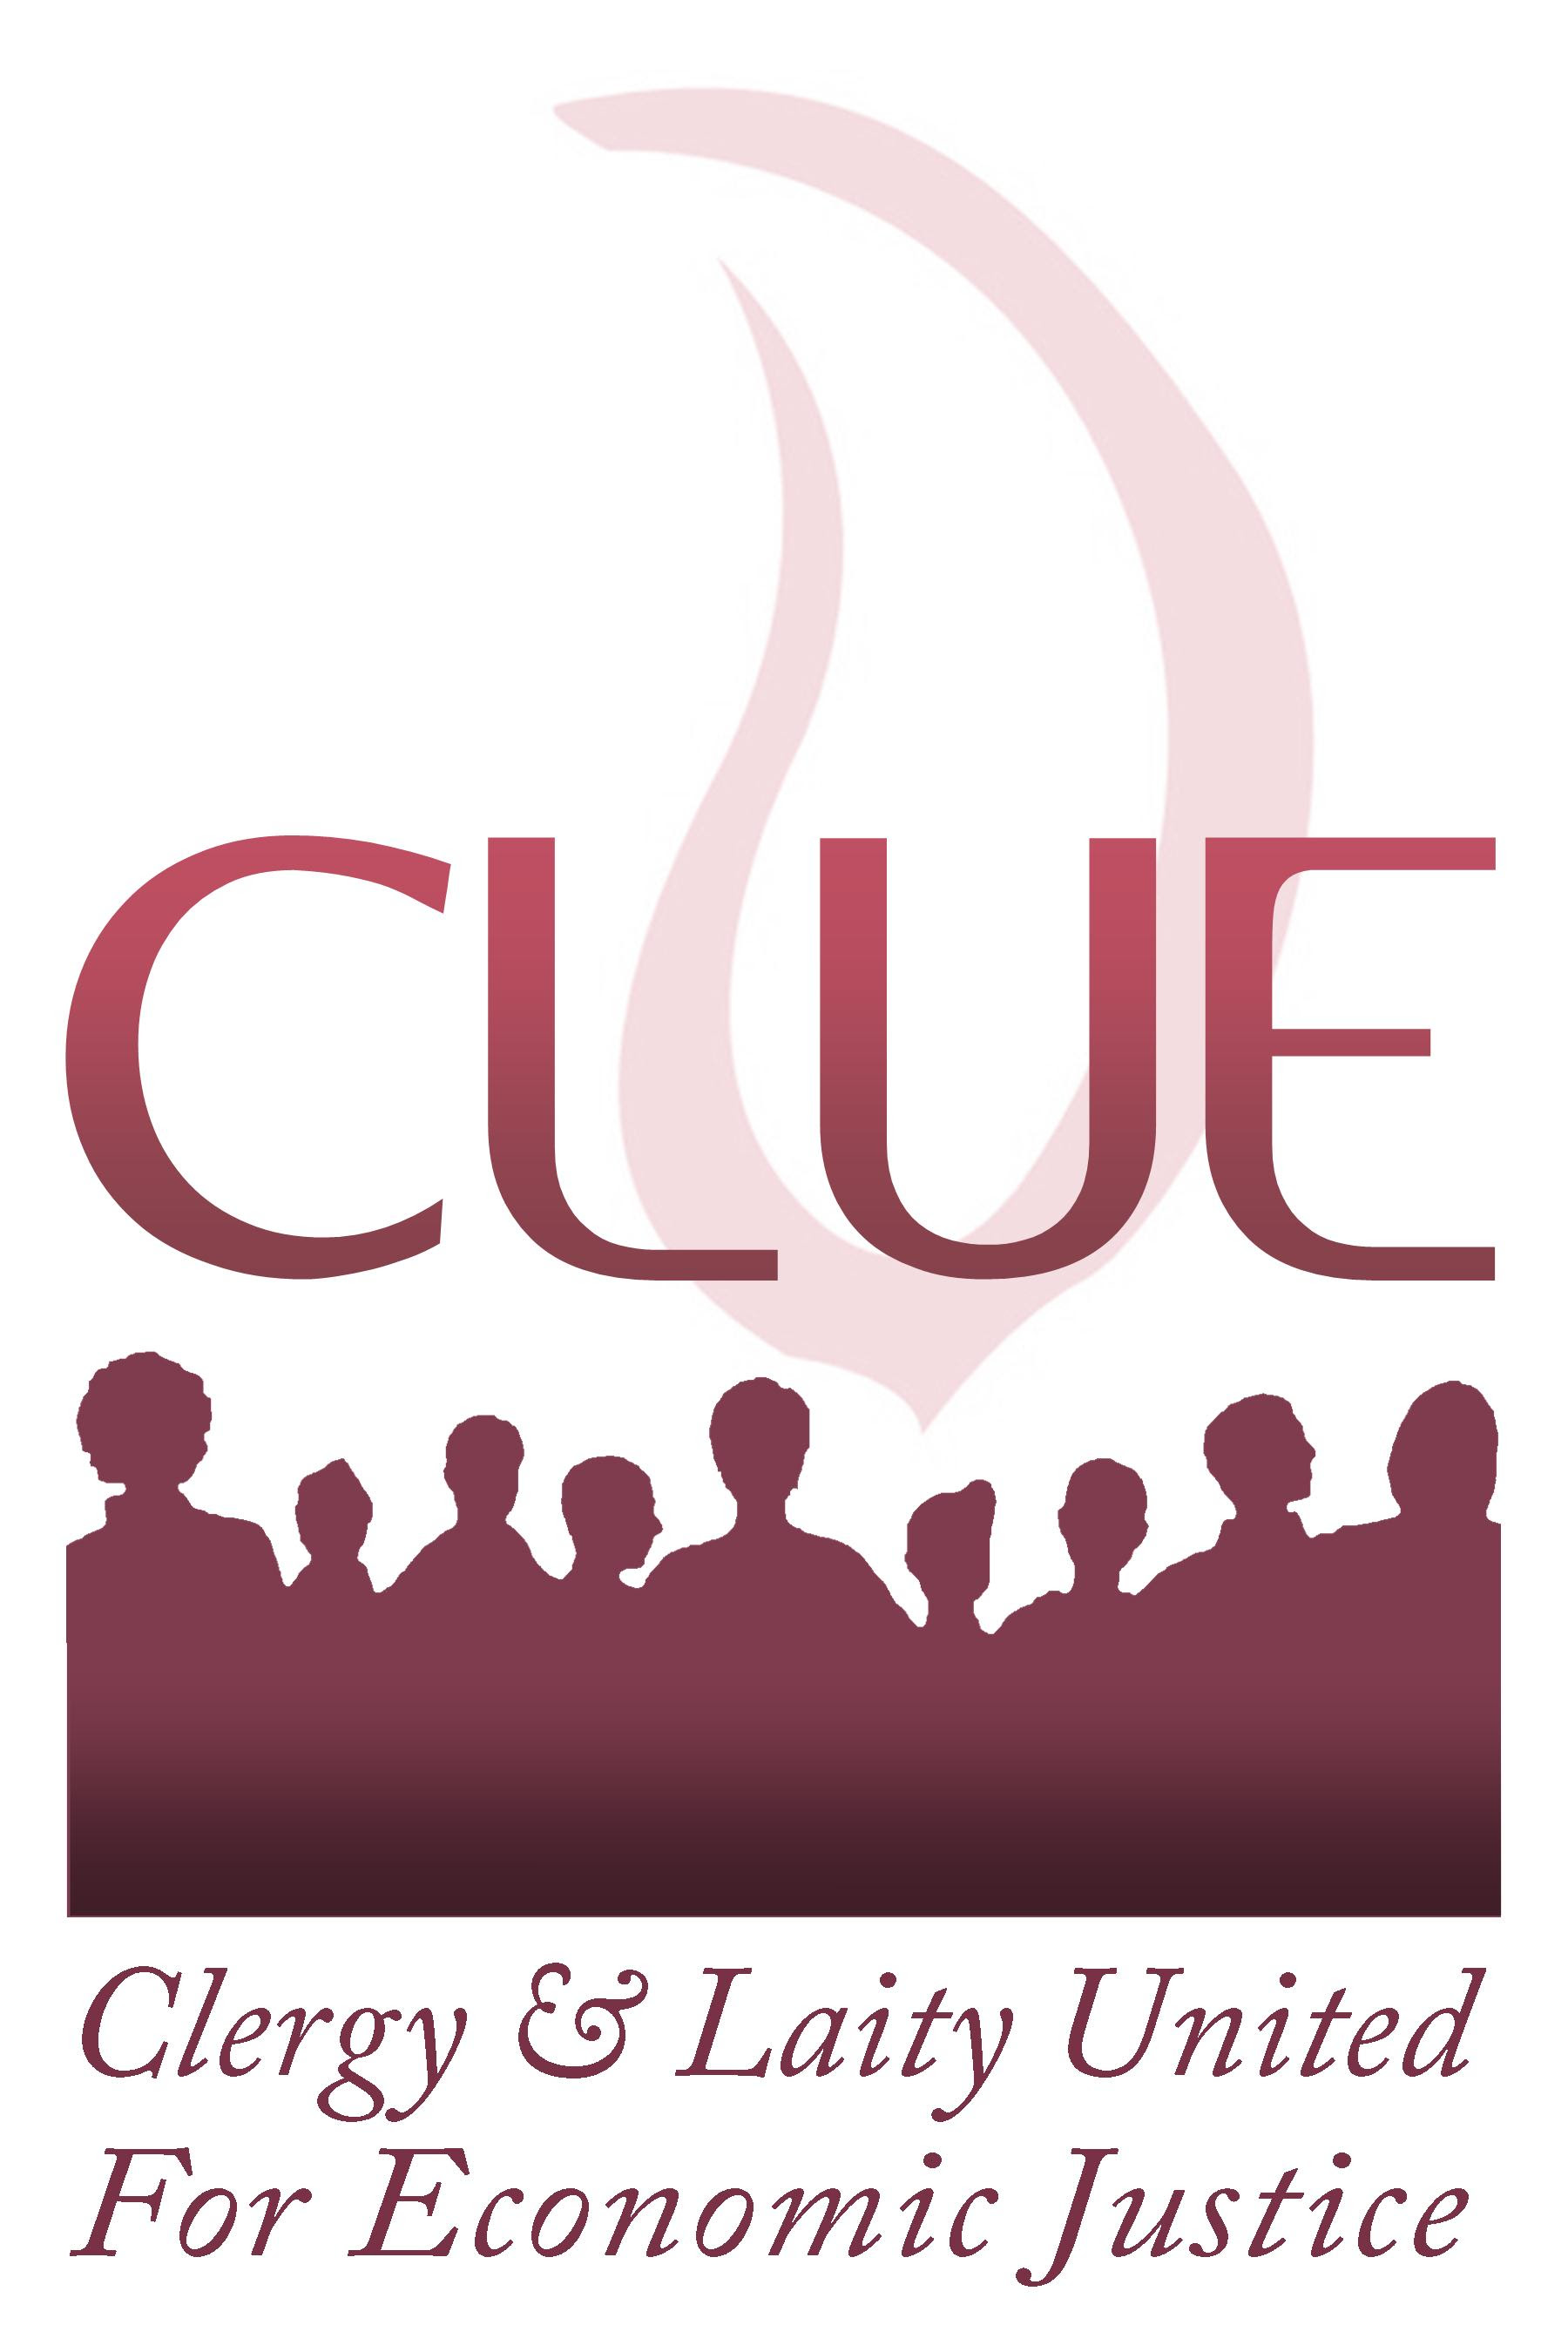 CLUE_Standard_Logo_-_High_Quality.jpg